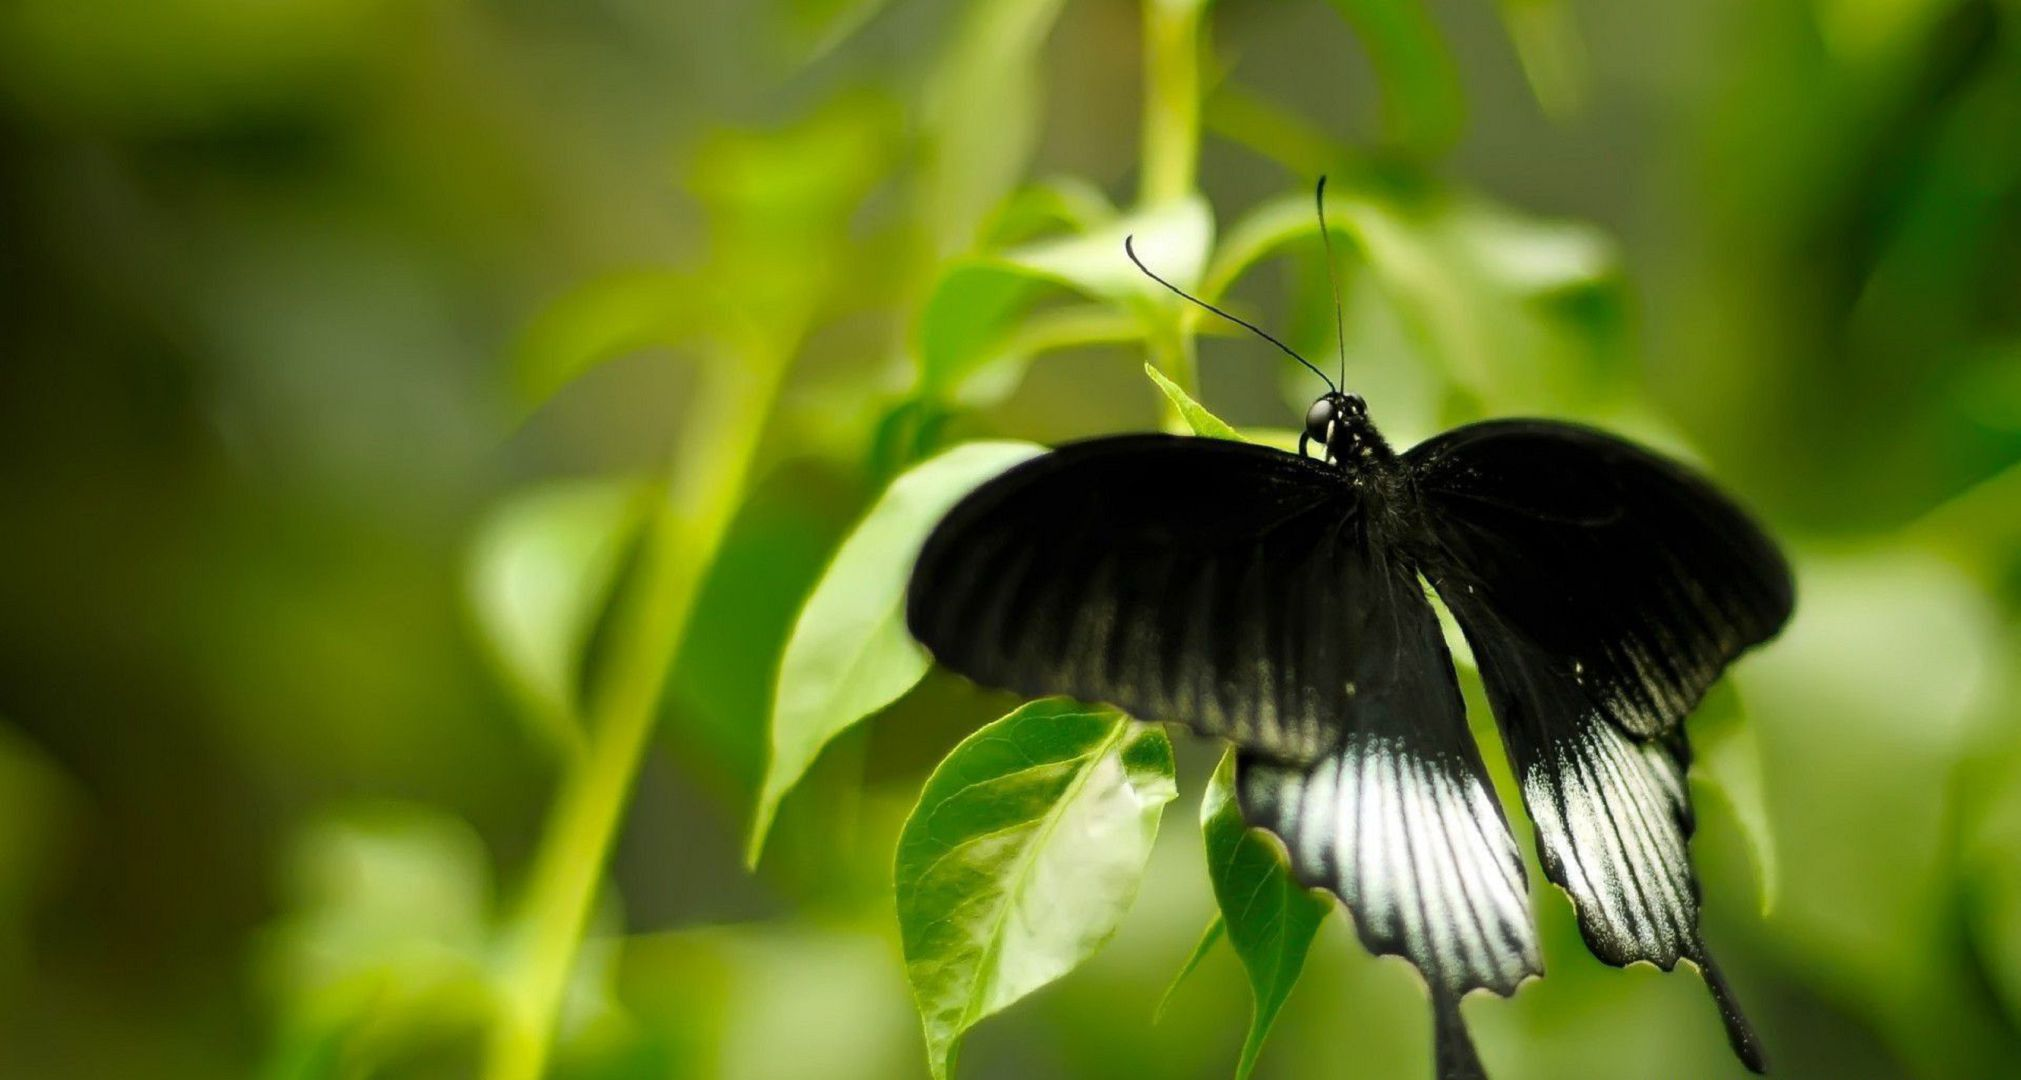 Black Butterfly In High Resolution